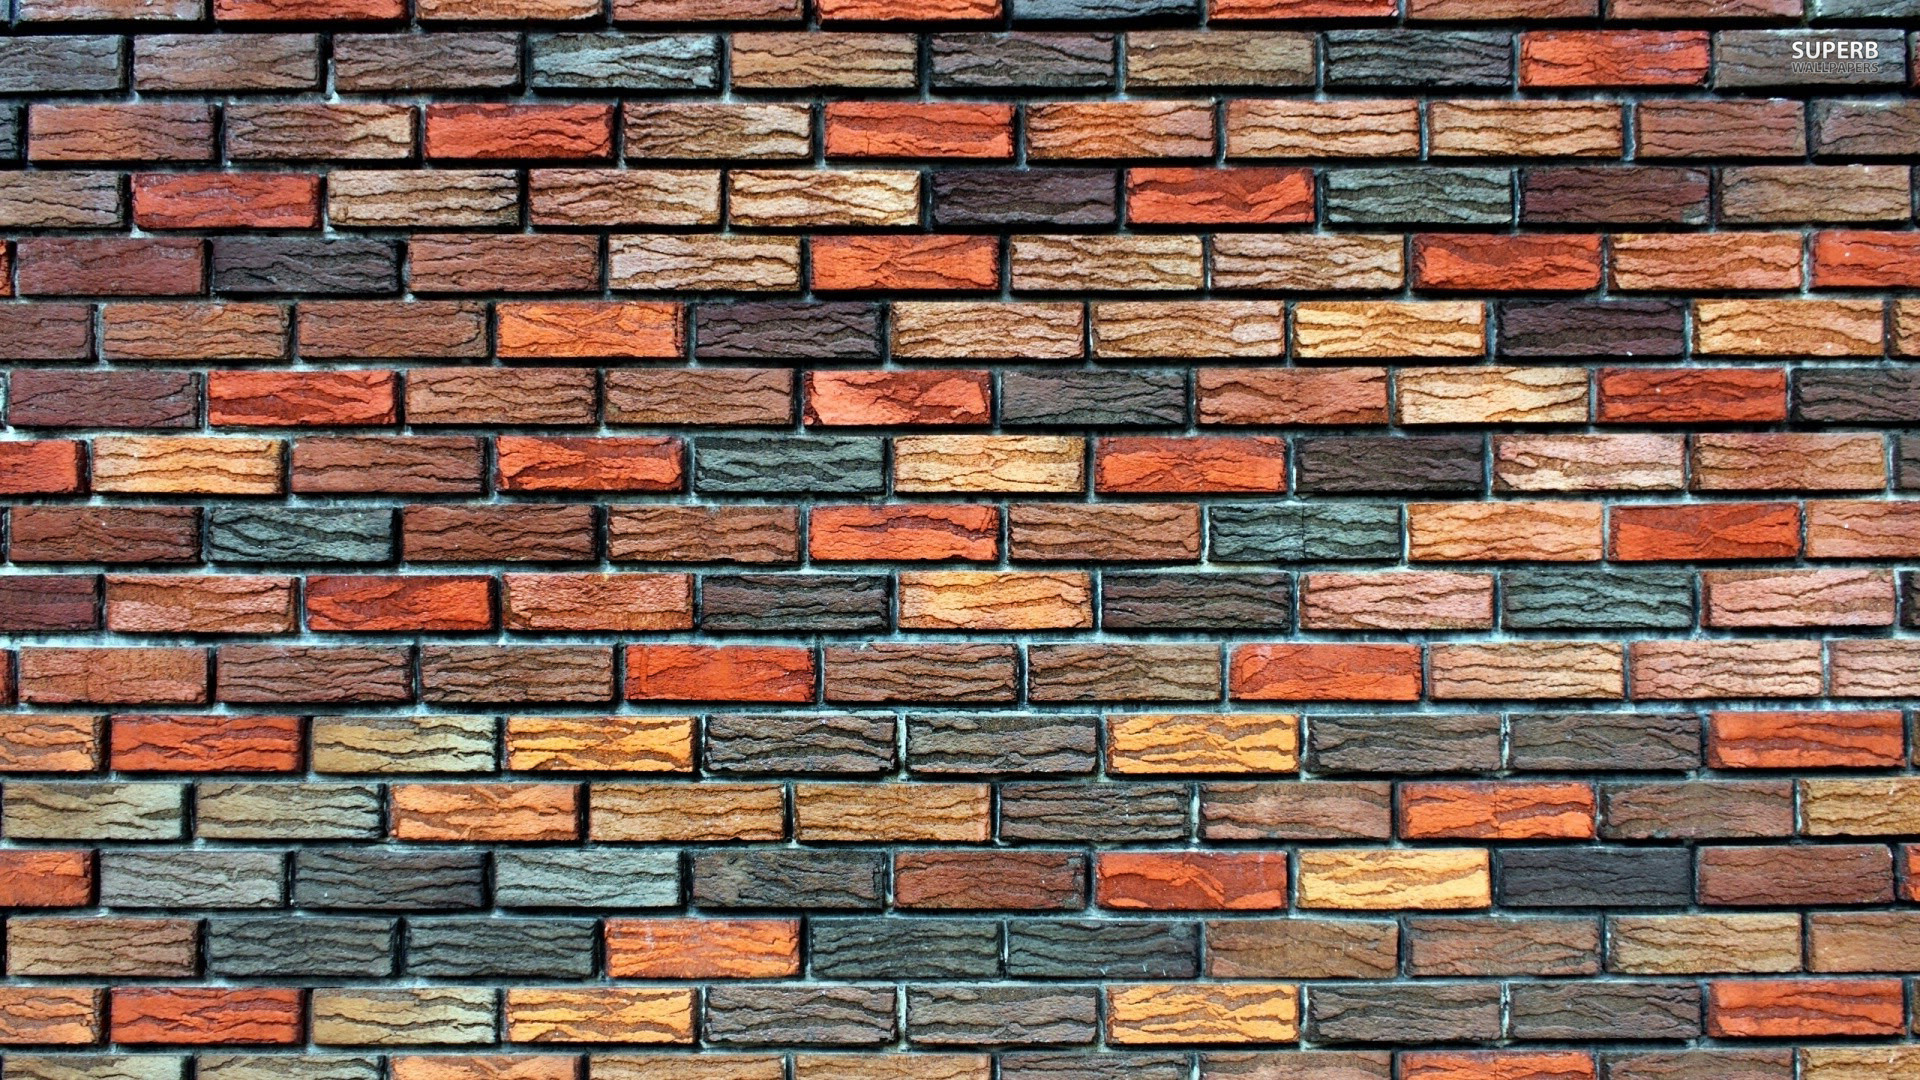 Hd Brick Wallpapers Backgrounds For Free Download